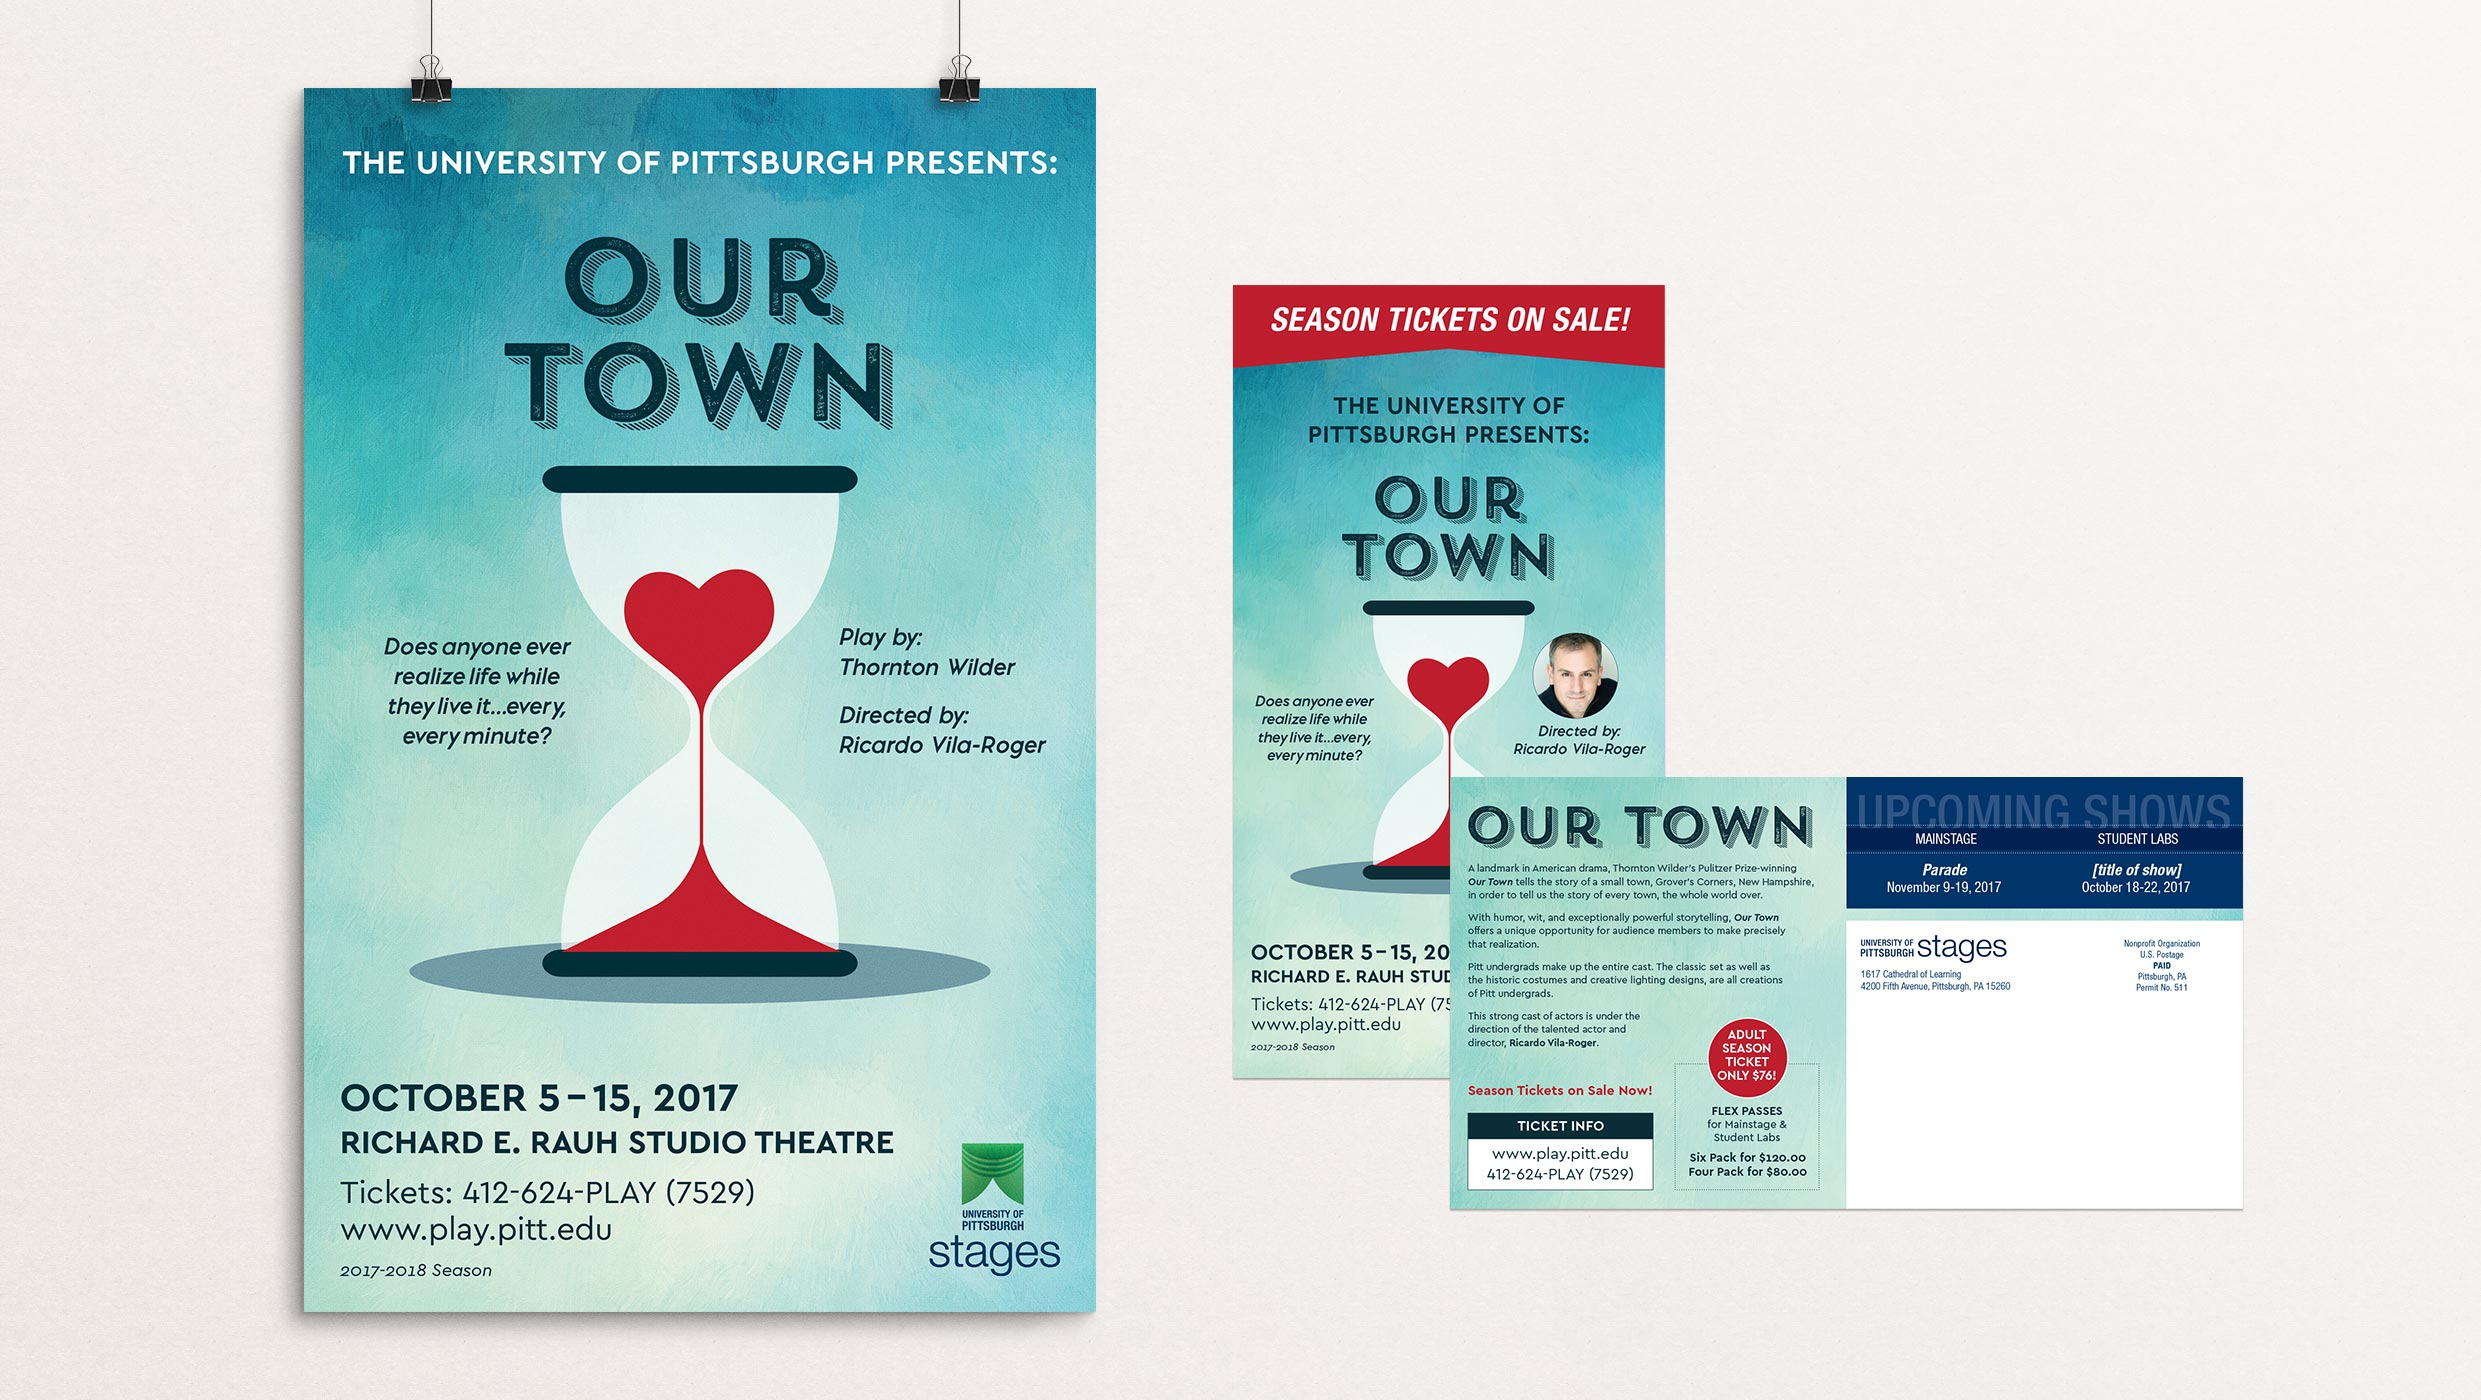 Our Town poster designed by Tara Hoover